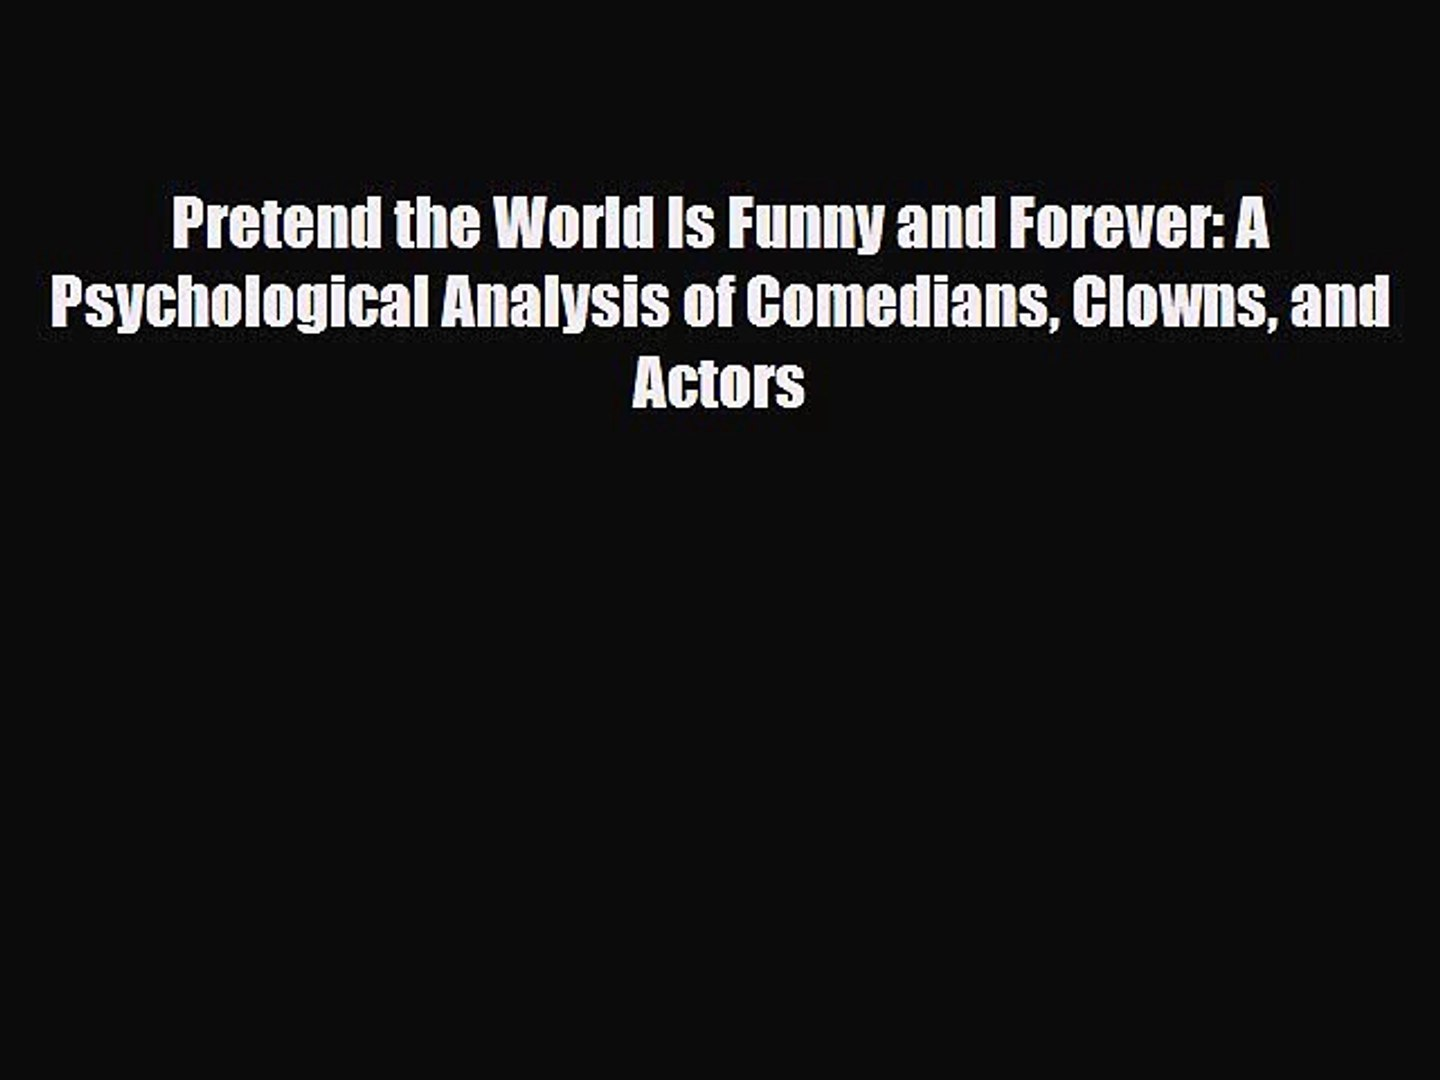 [Download] Pretend the World Is Funny and Forever: A Psychological Analysis of Comedians Clowns